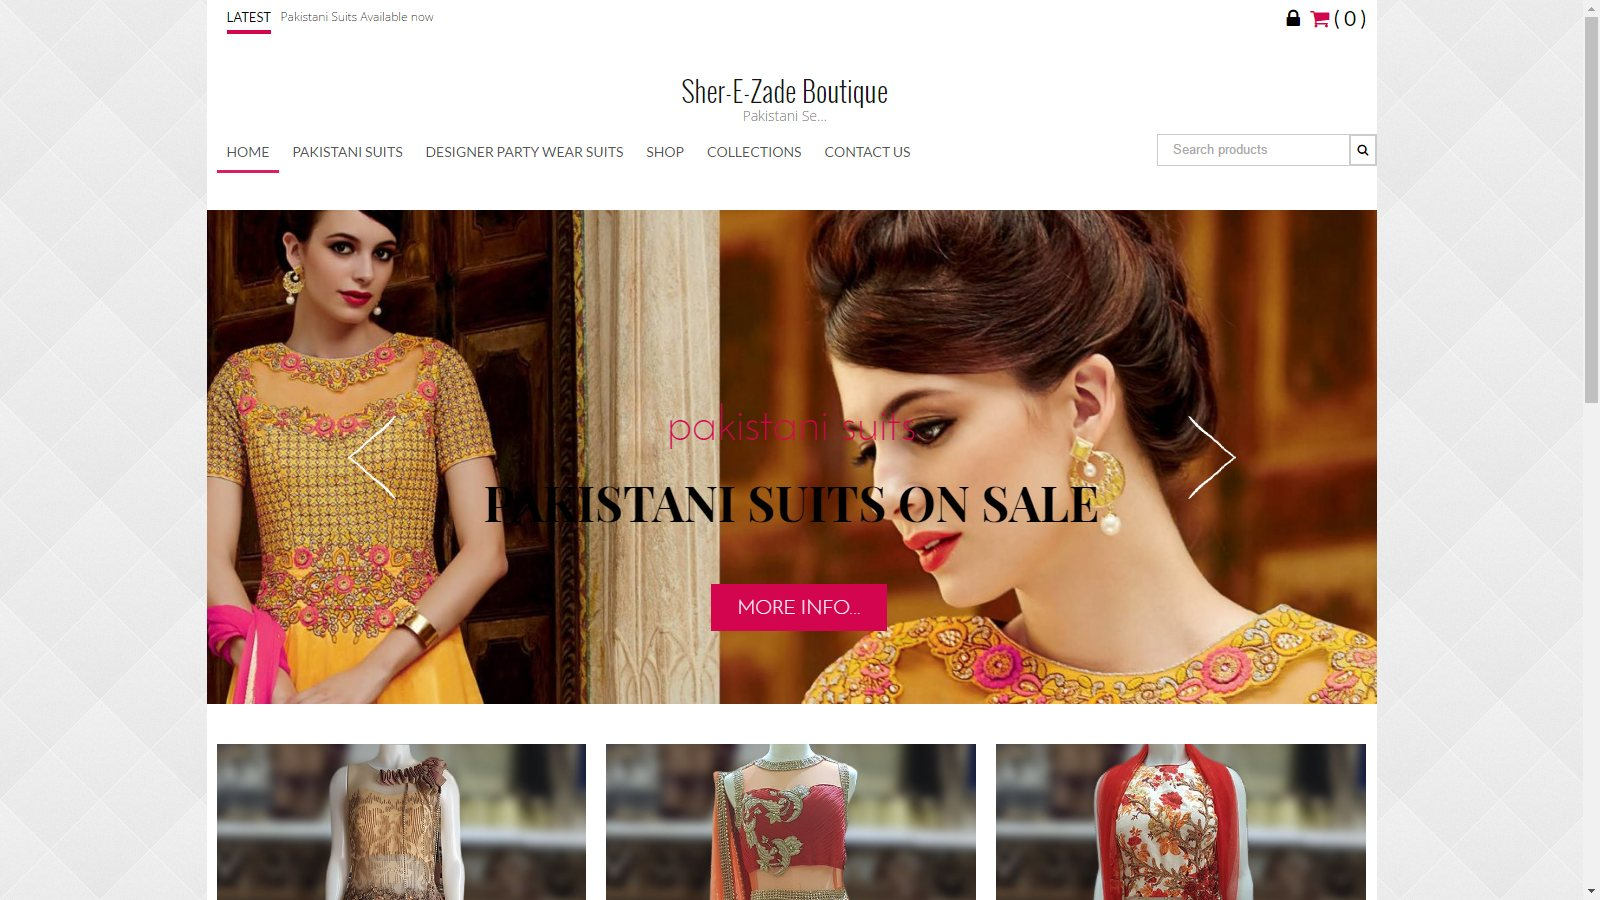 SHER-E-ZADE BOUTIQUE